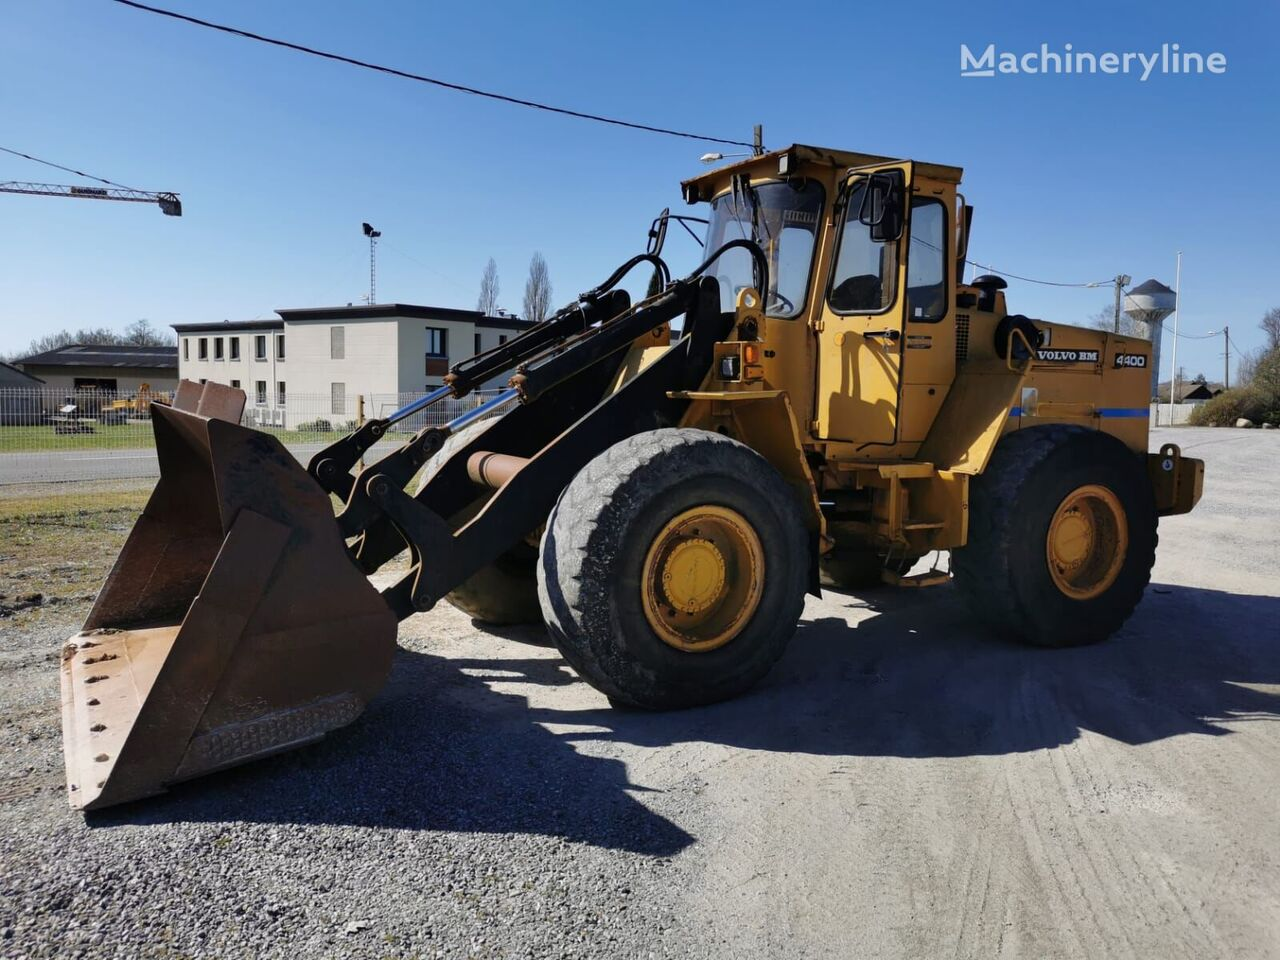 VOLVO BM 4400 wheel loader